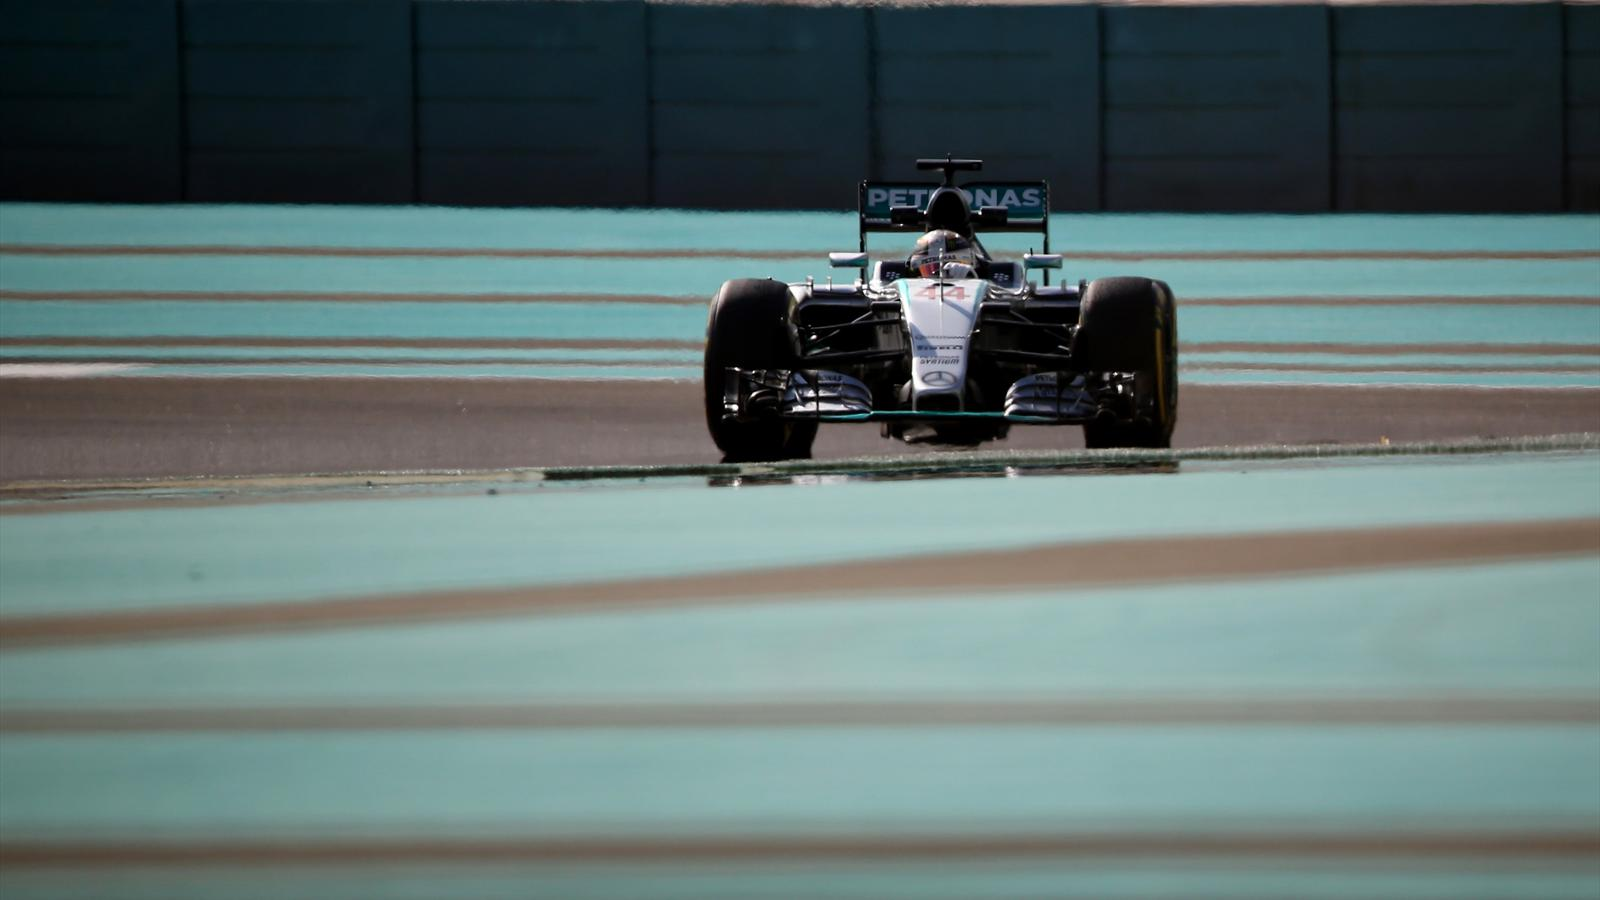 Mercedes AMG Petronas F1 Team's British driver Lewis Hamilton drives during the first practice session at the Yas Marina circuit in Abu Dhabi on November 27, 2015 ahead of the Abu Dhabi Formula One Grand Prix.